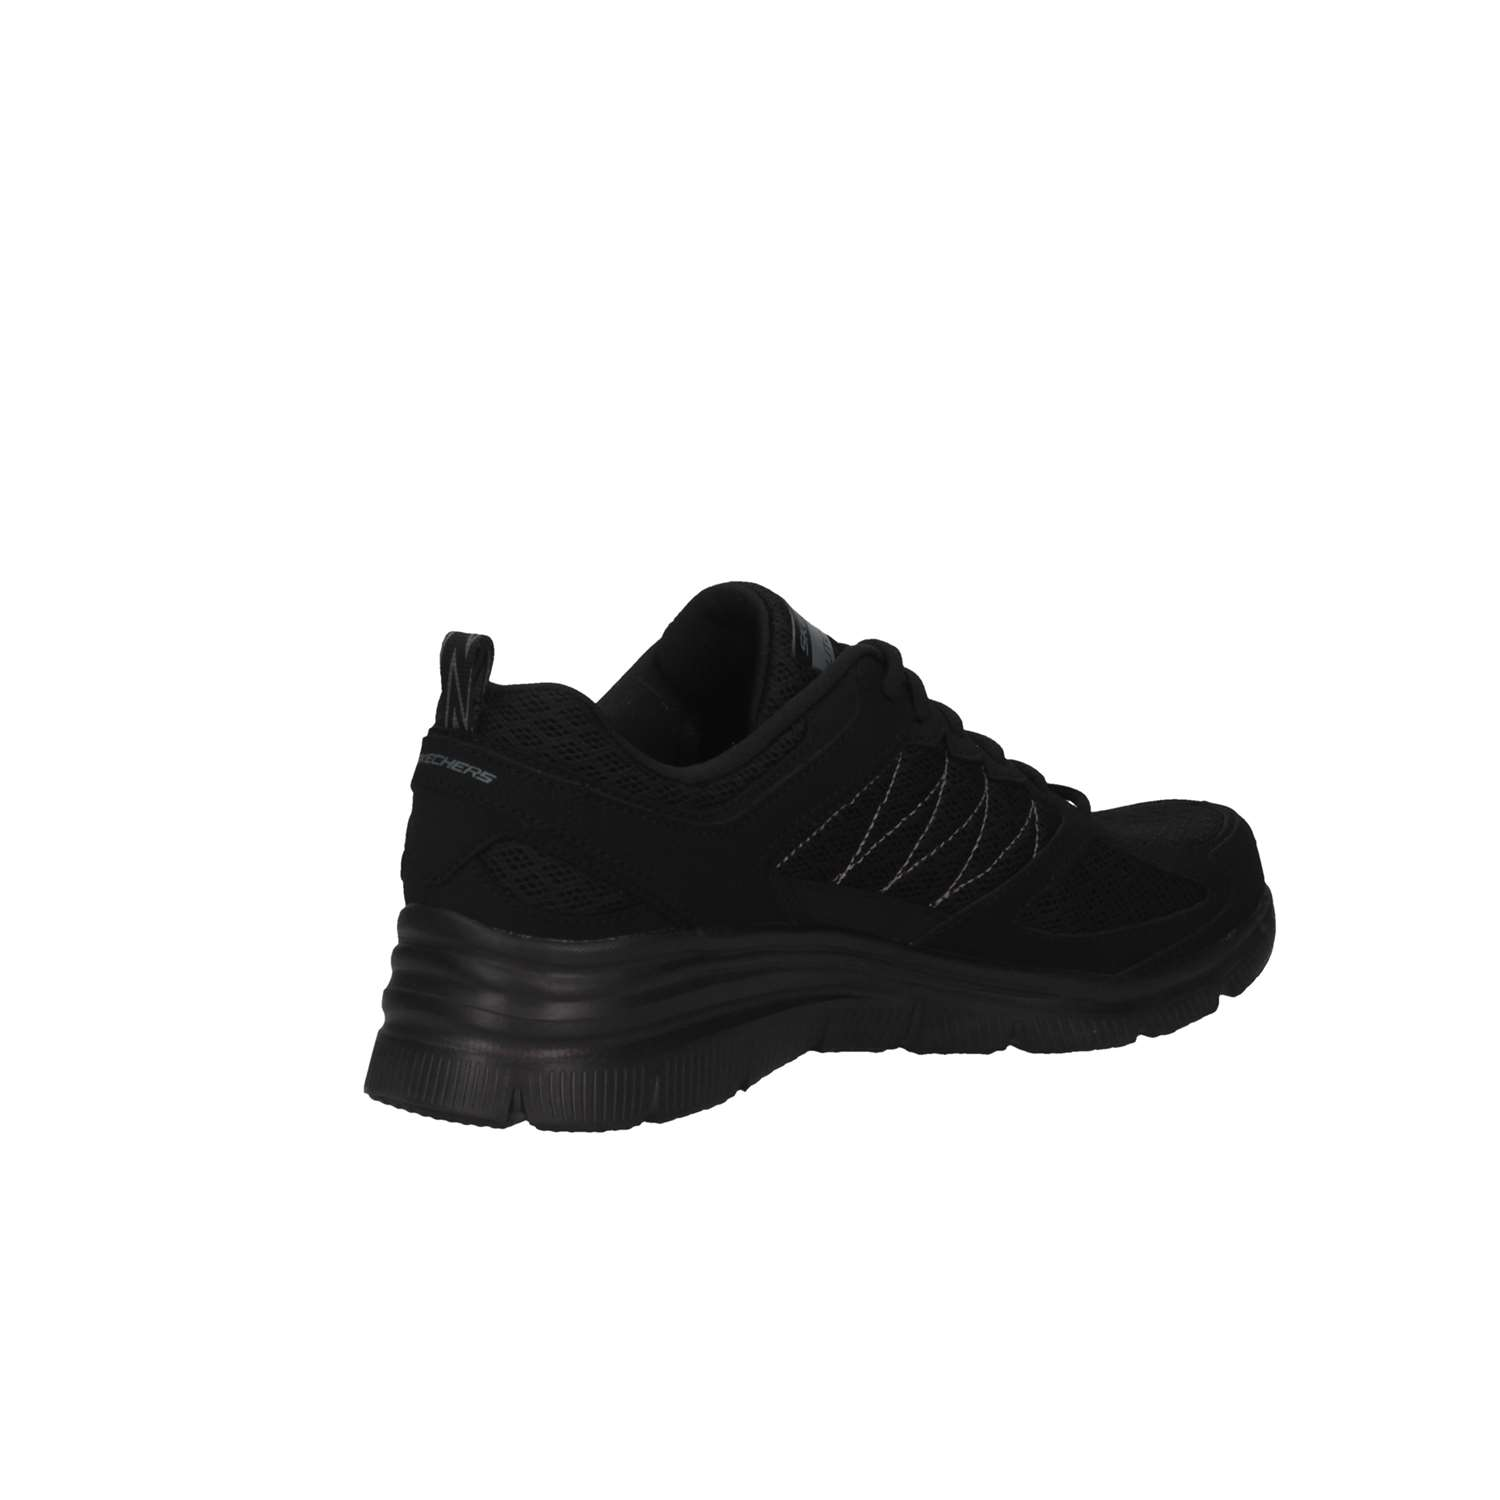 Donna Autunno Skechers Sneakers 12713 bbk inverno Oq6AUwAF